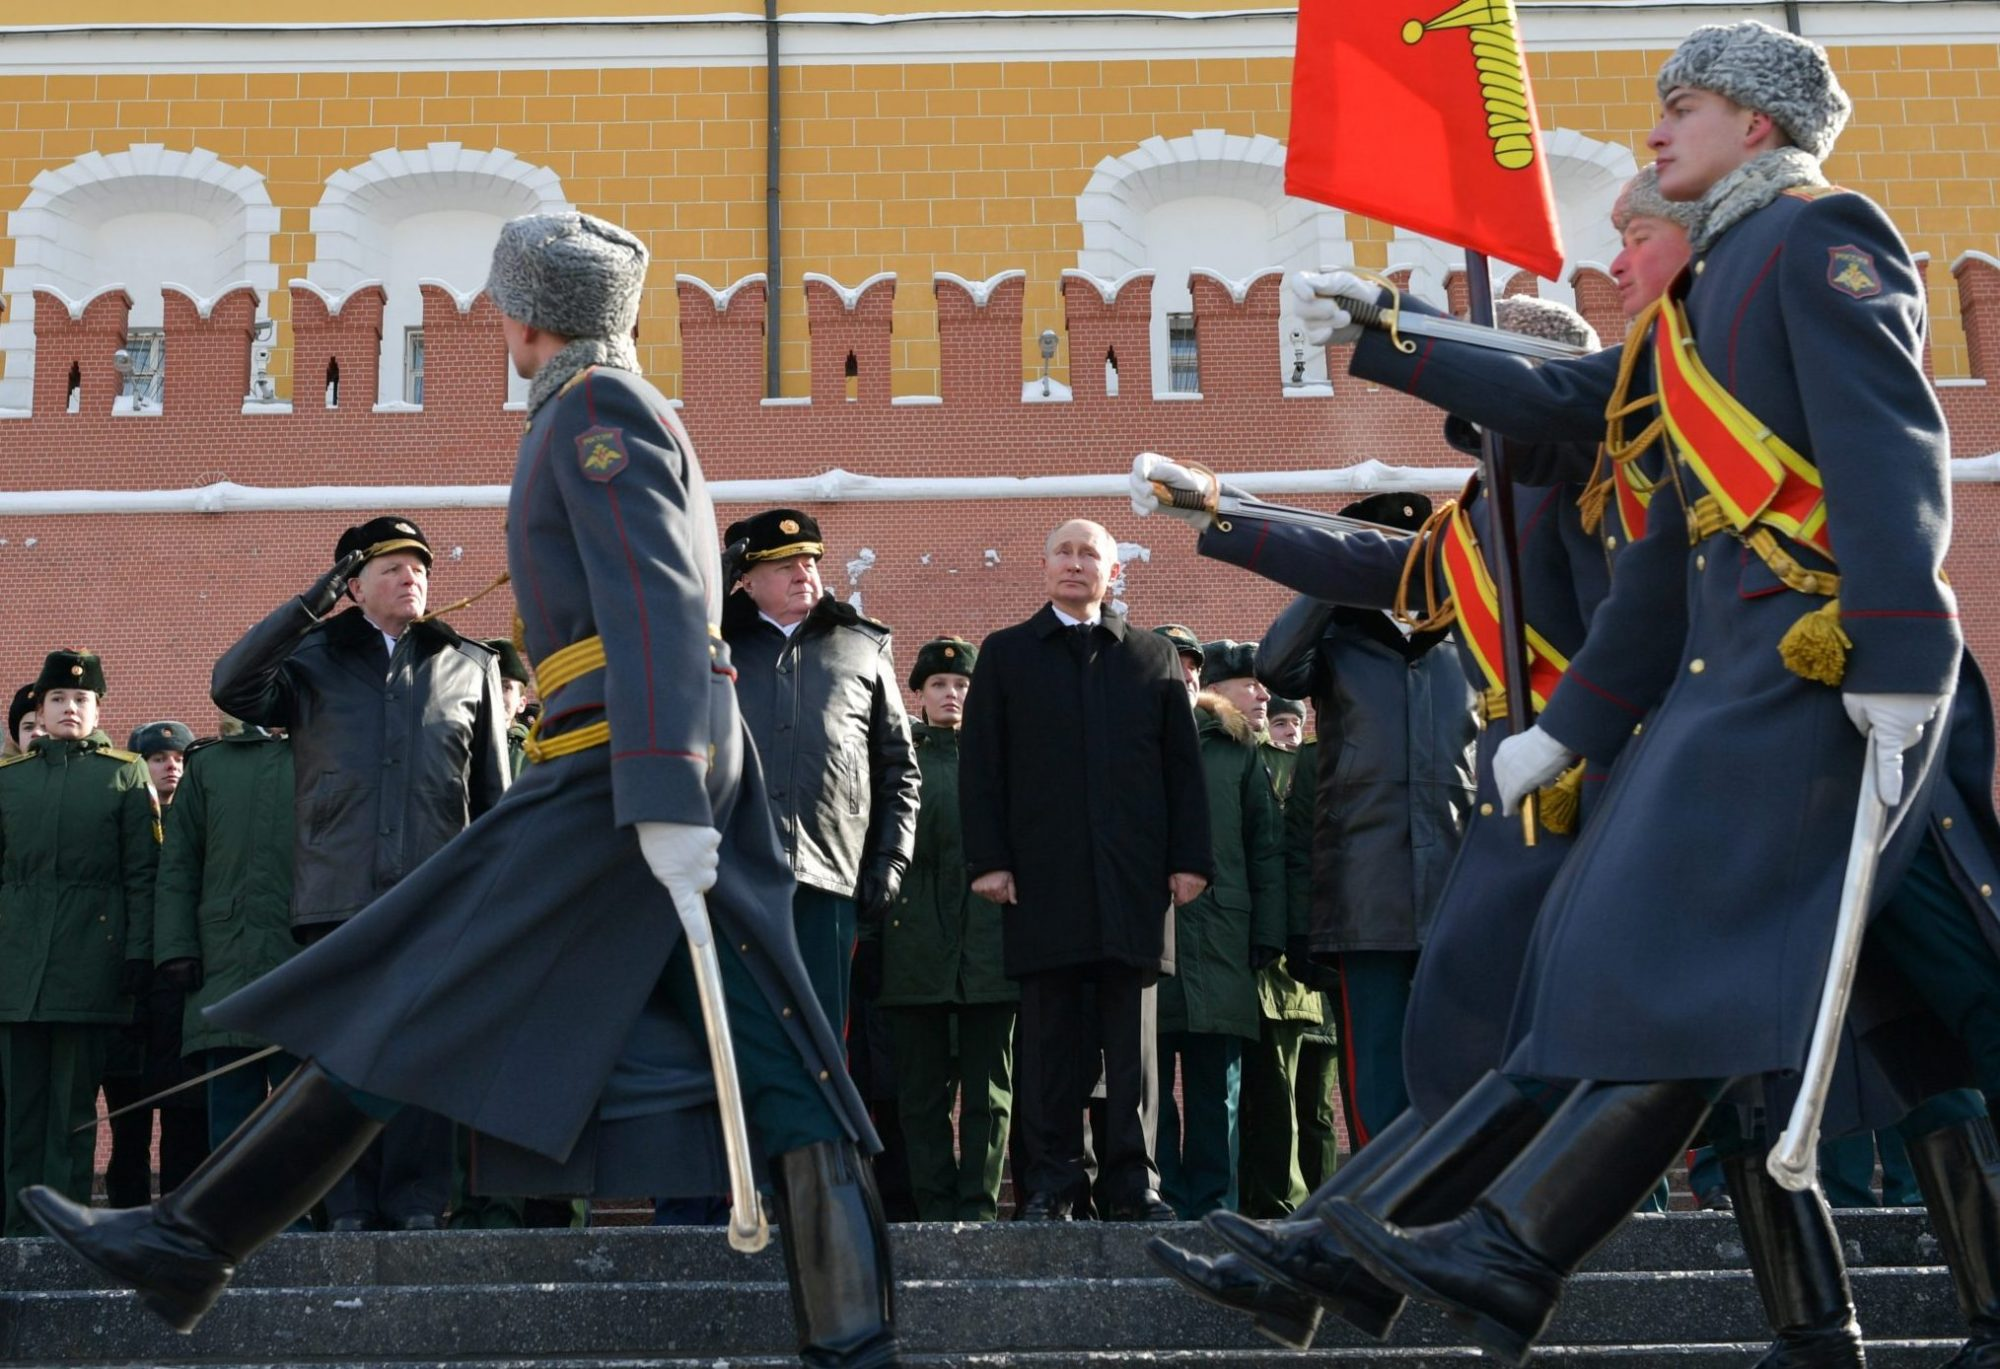 Putin's saber-rattling reflects Russian rage over the loss of Ukraine